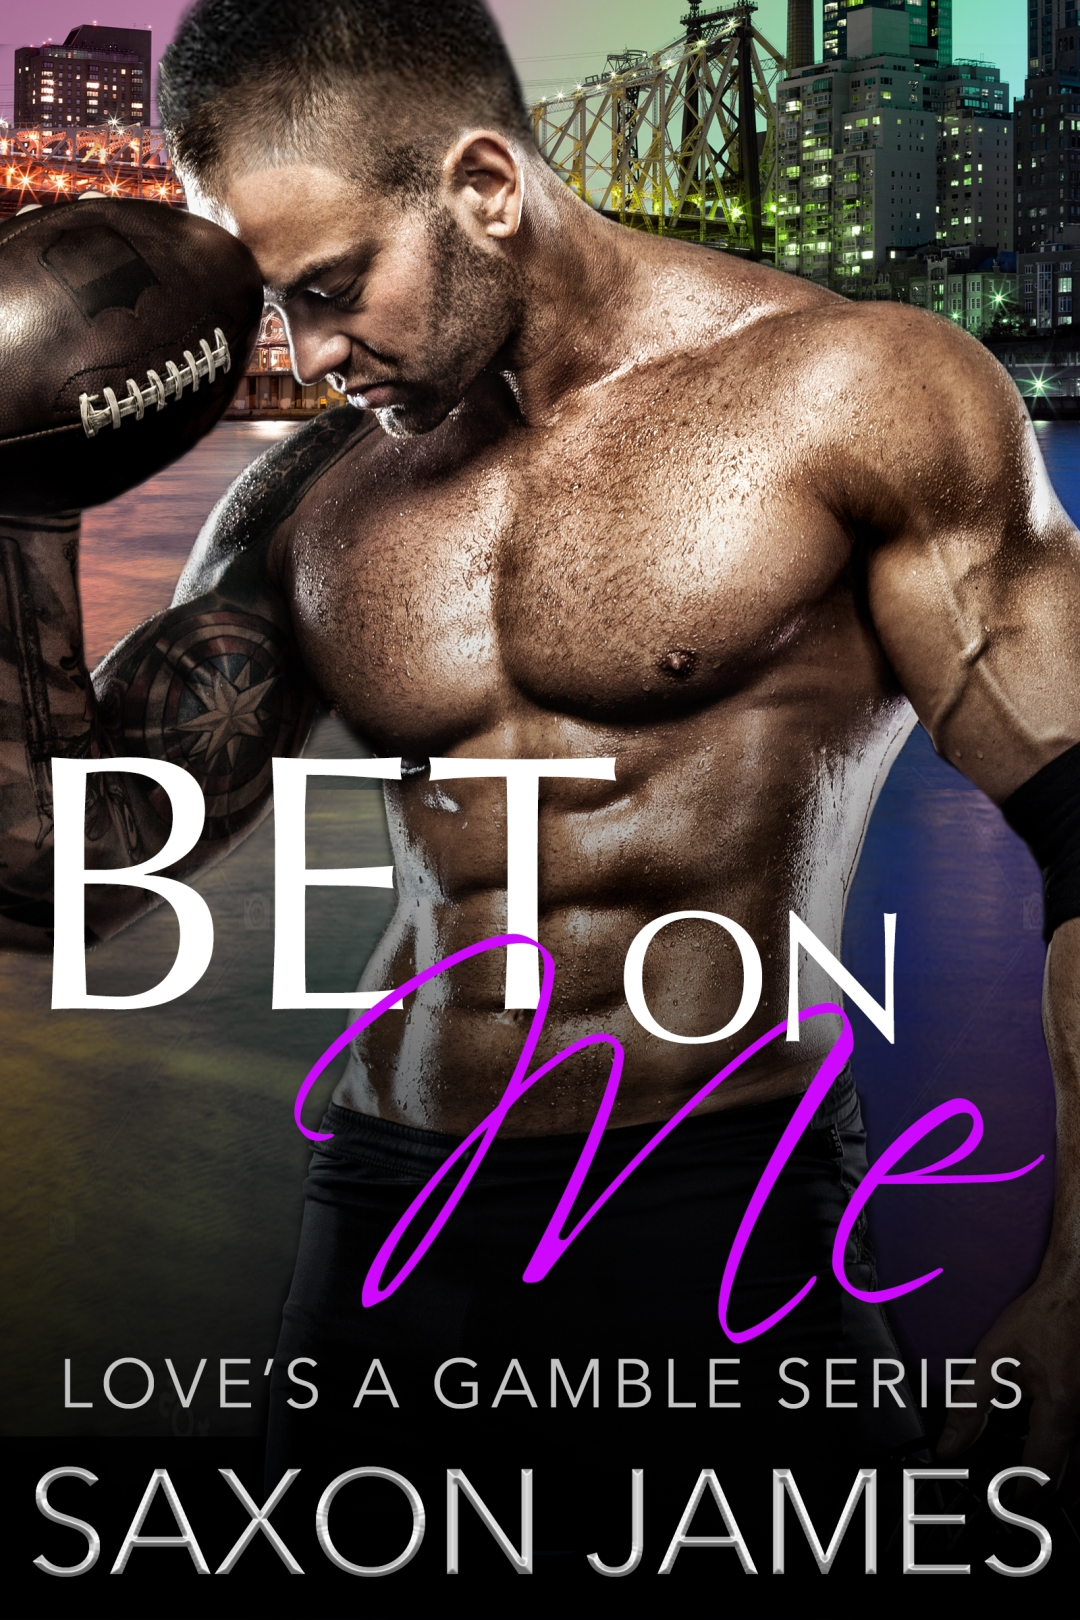 Bet on me Ebook.jpg